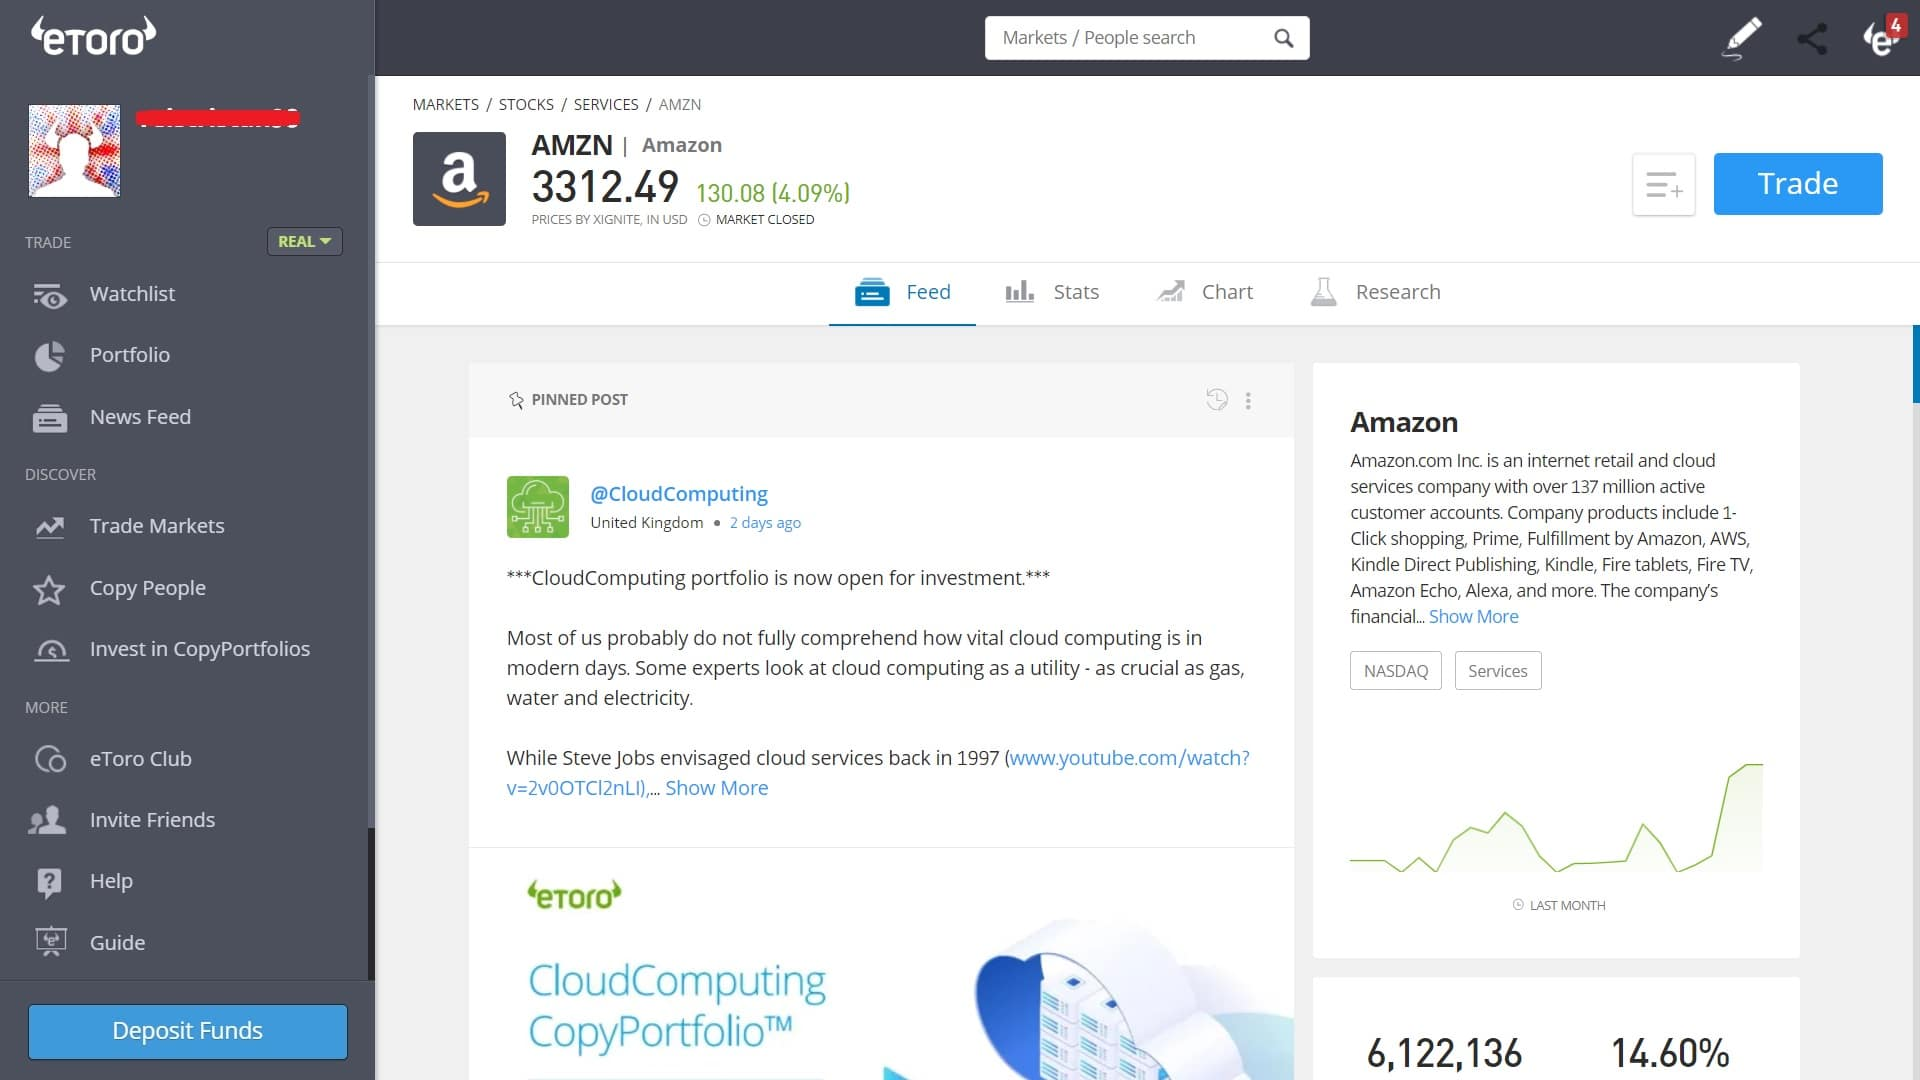 Amazon stock trading on eToro's platform